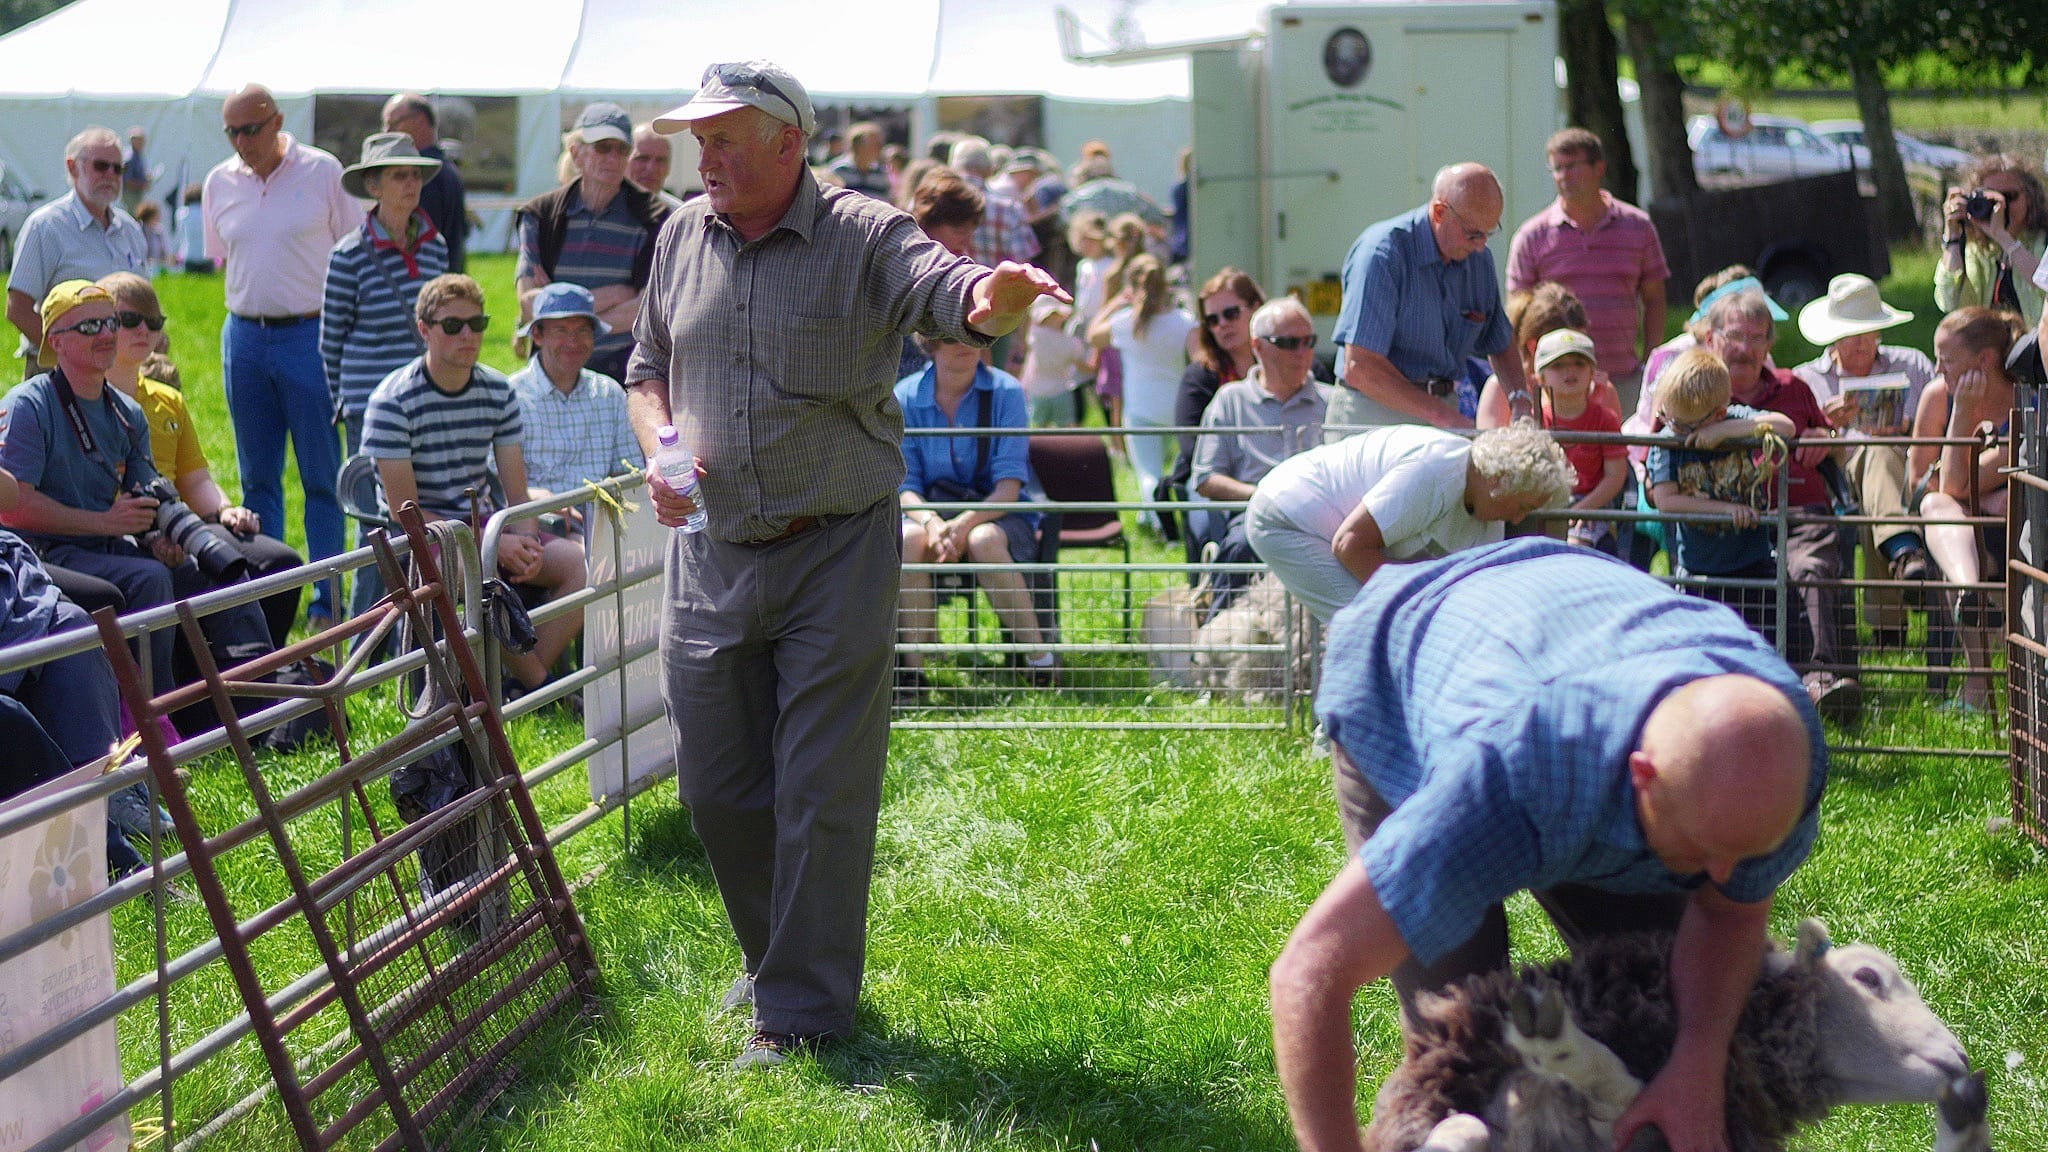 Shepherd's Meets & Country Shows